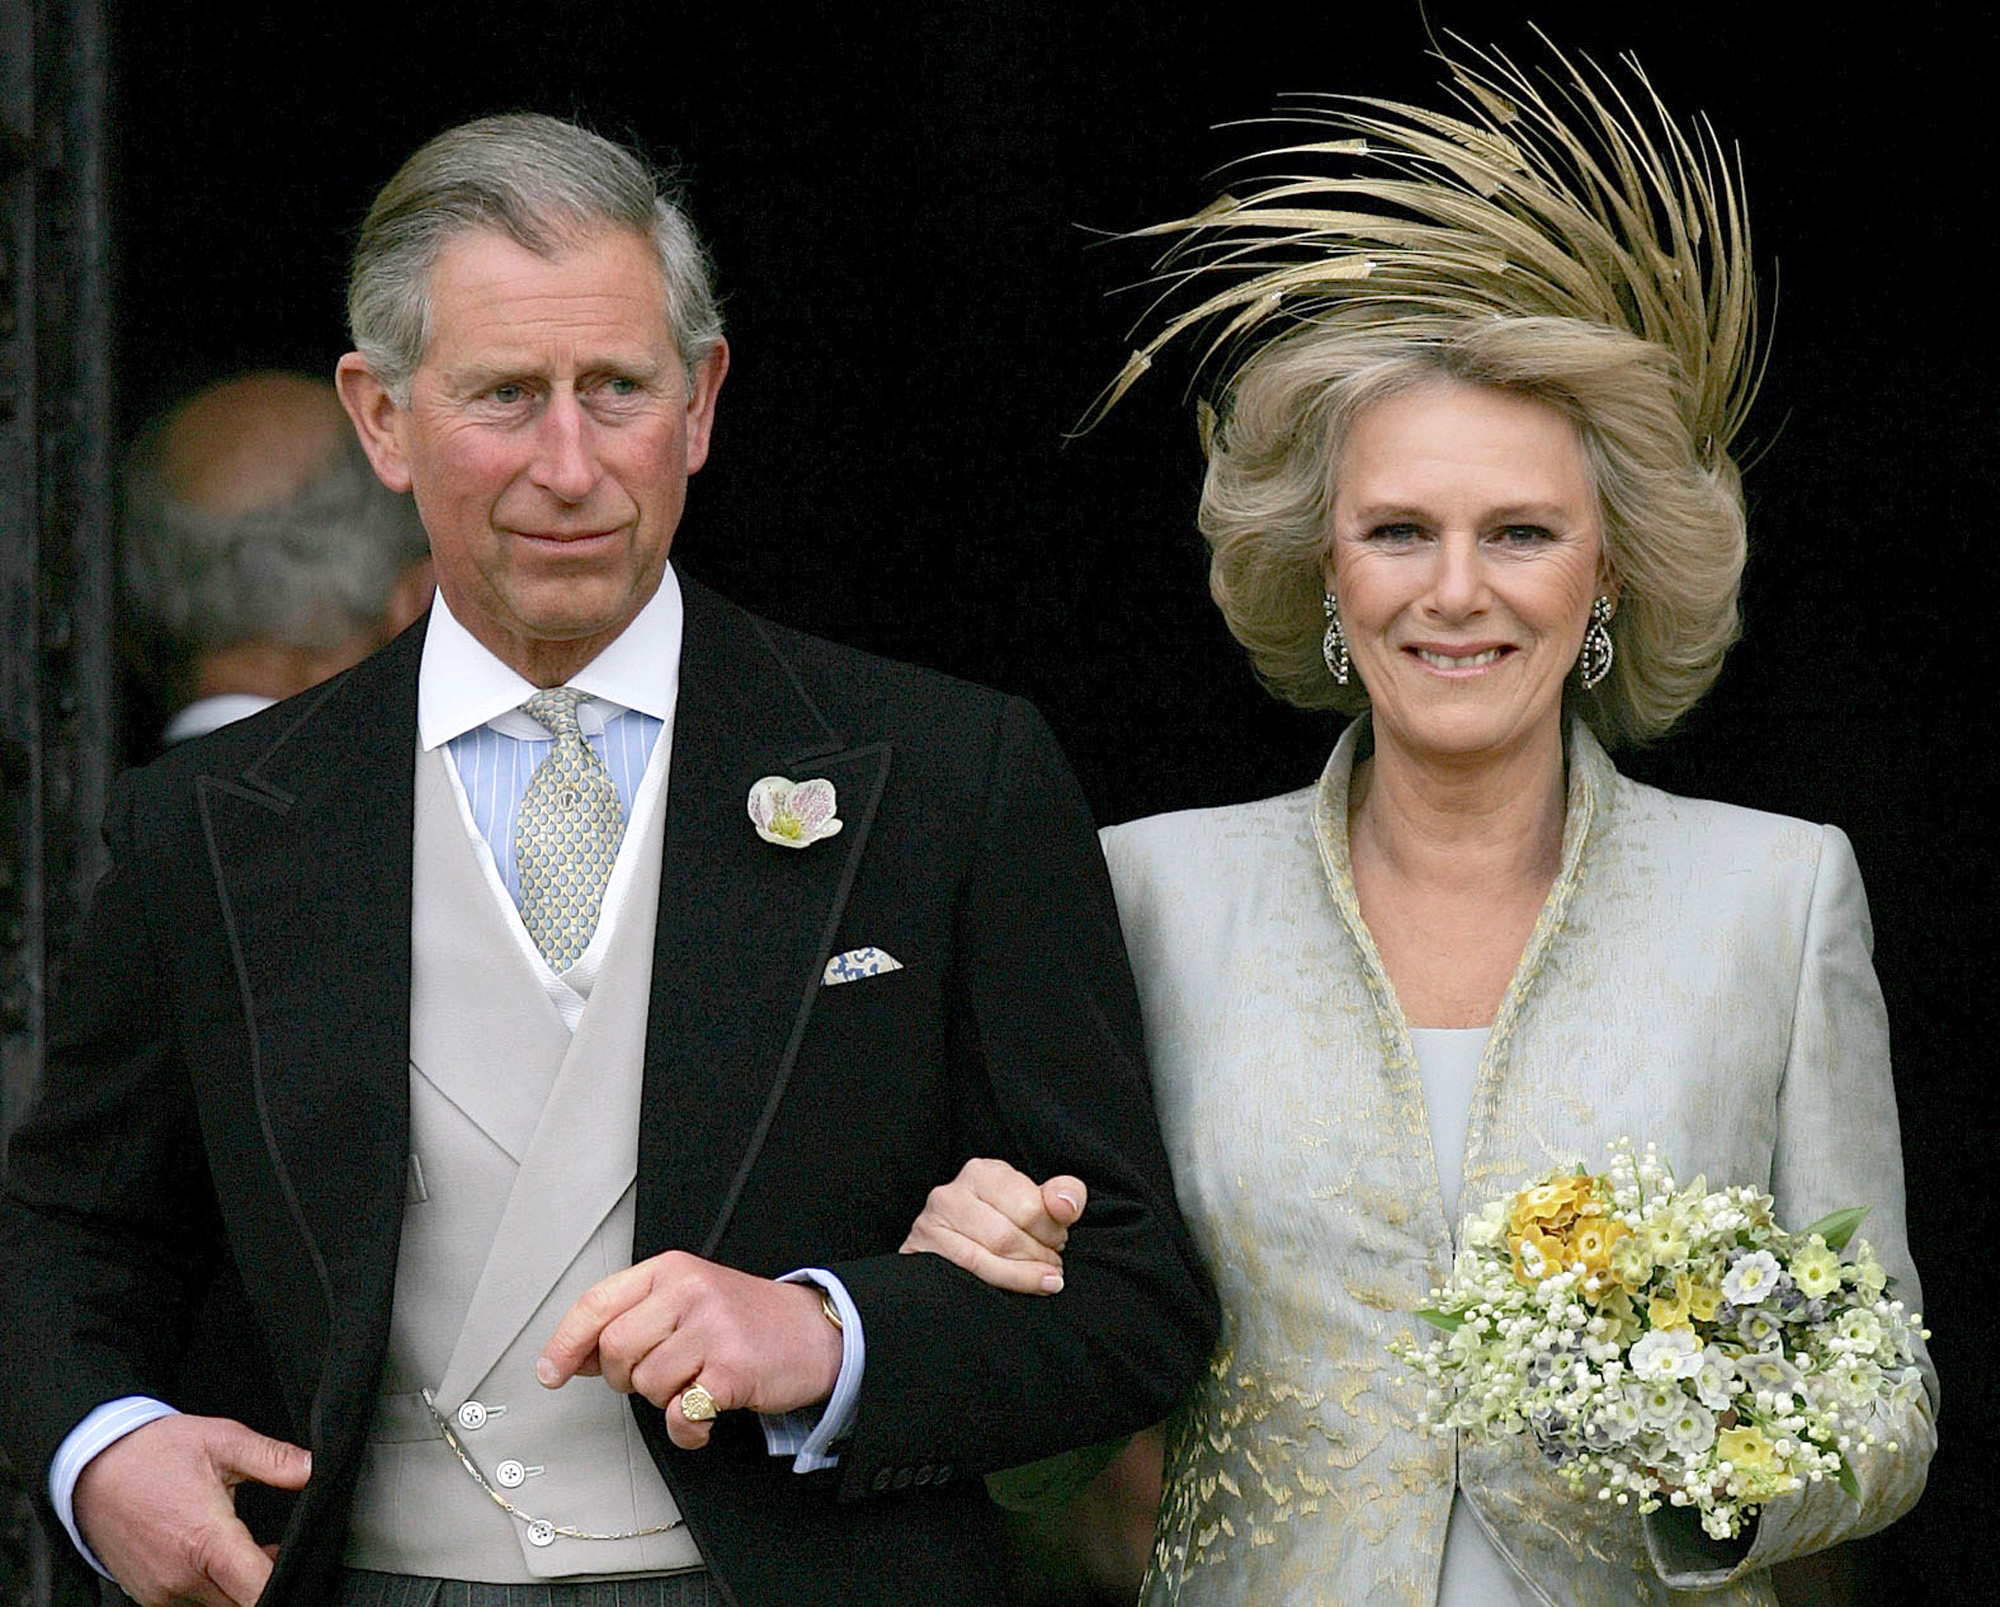 Britain's Prince Charles and his bride Camilla Duchess of Cornwall leave St George's Chaple in Windsor England following the church blessing of their civil wedding ceremony Saturday